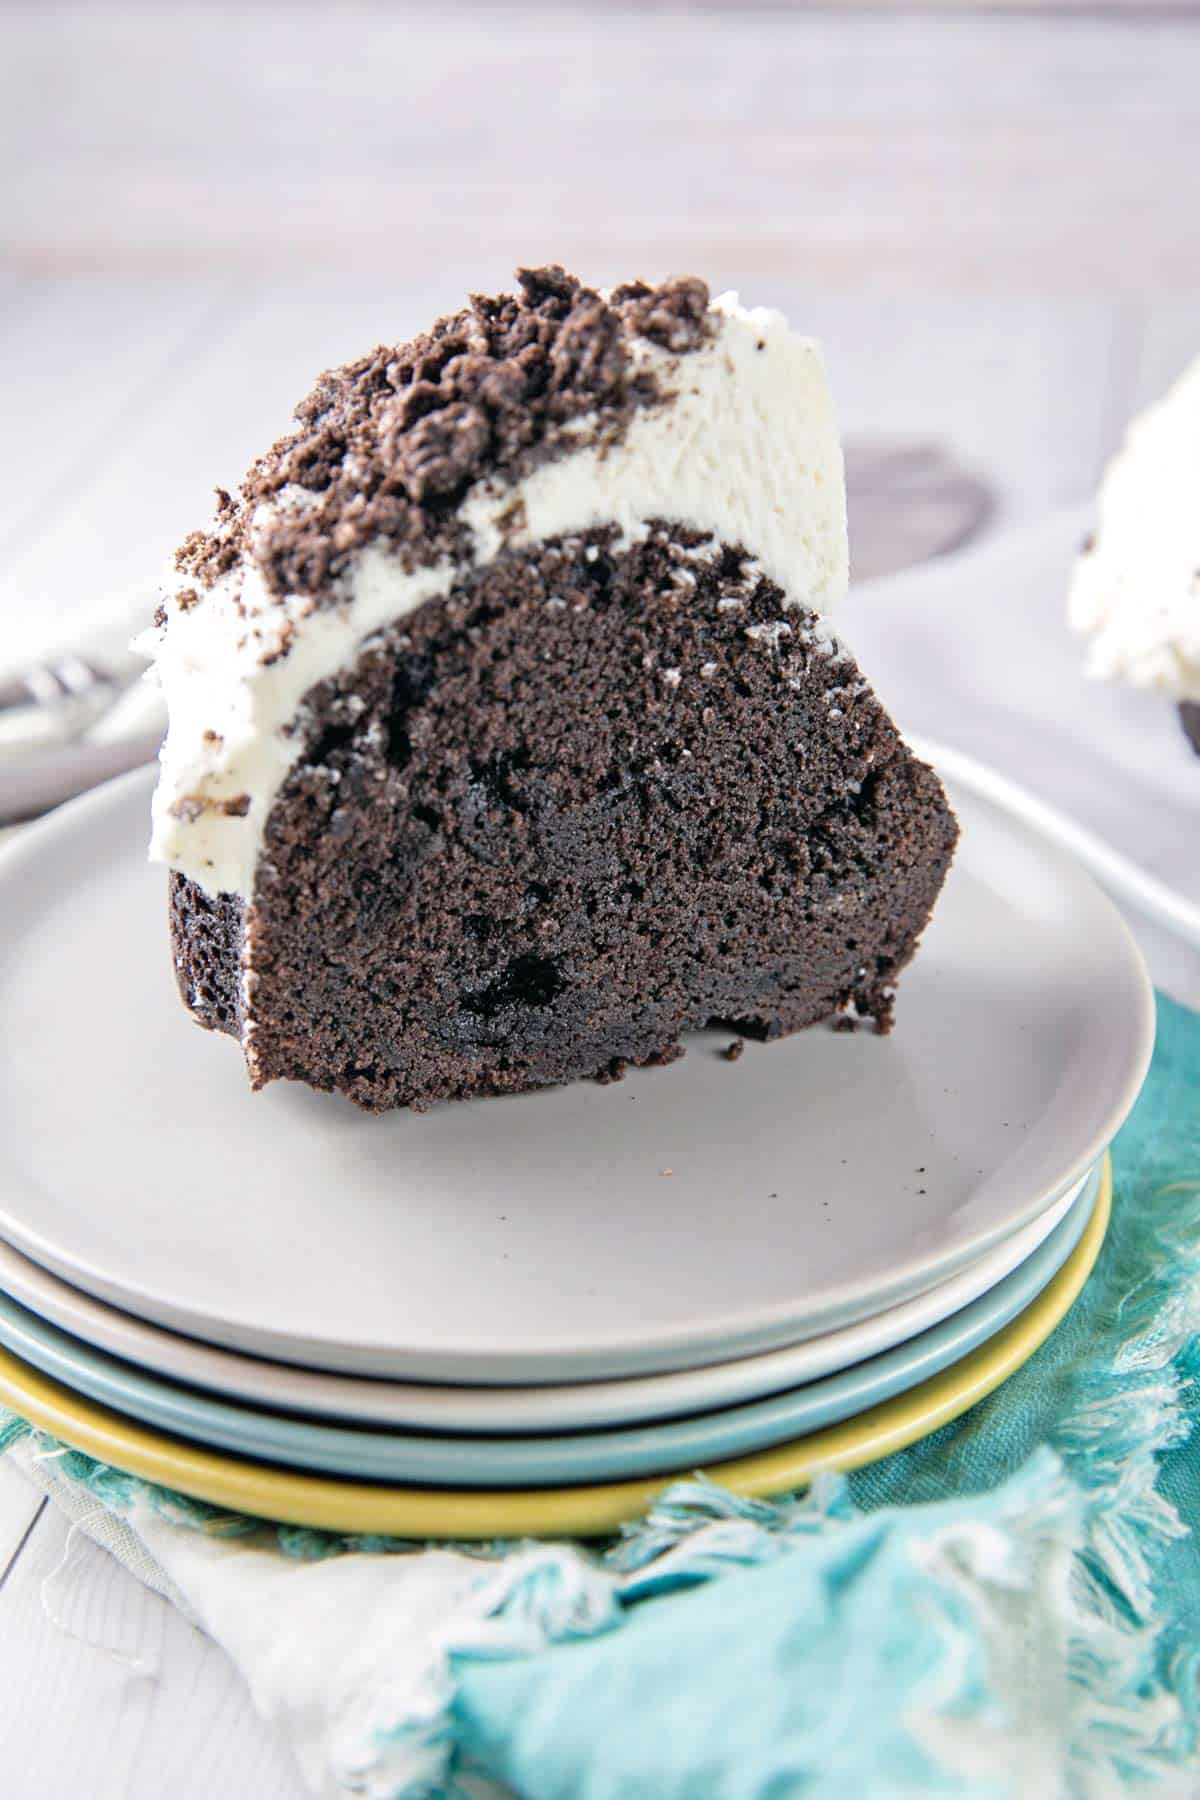 single slice of a dark black chocolate oreo bundt cake with white frosting